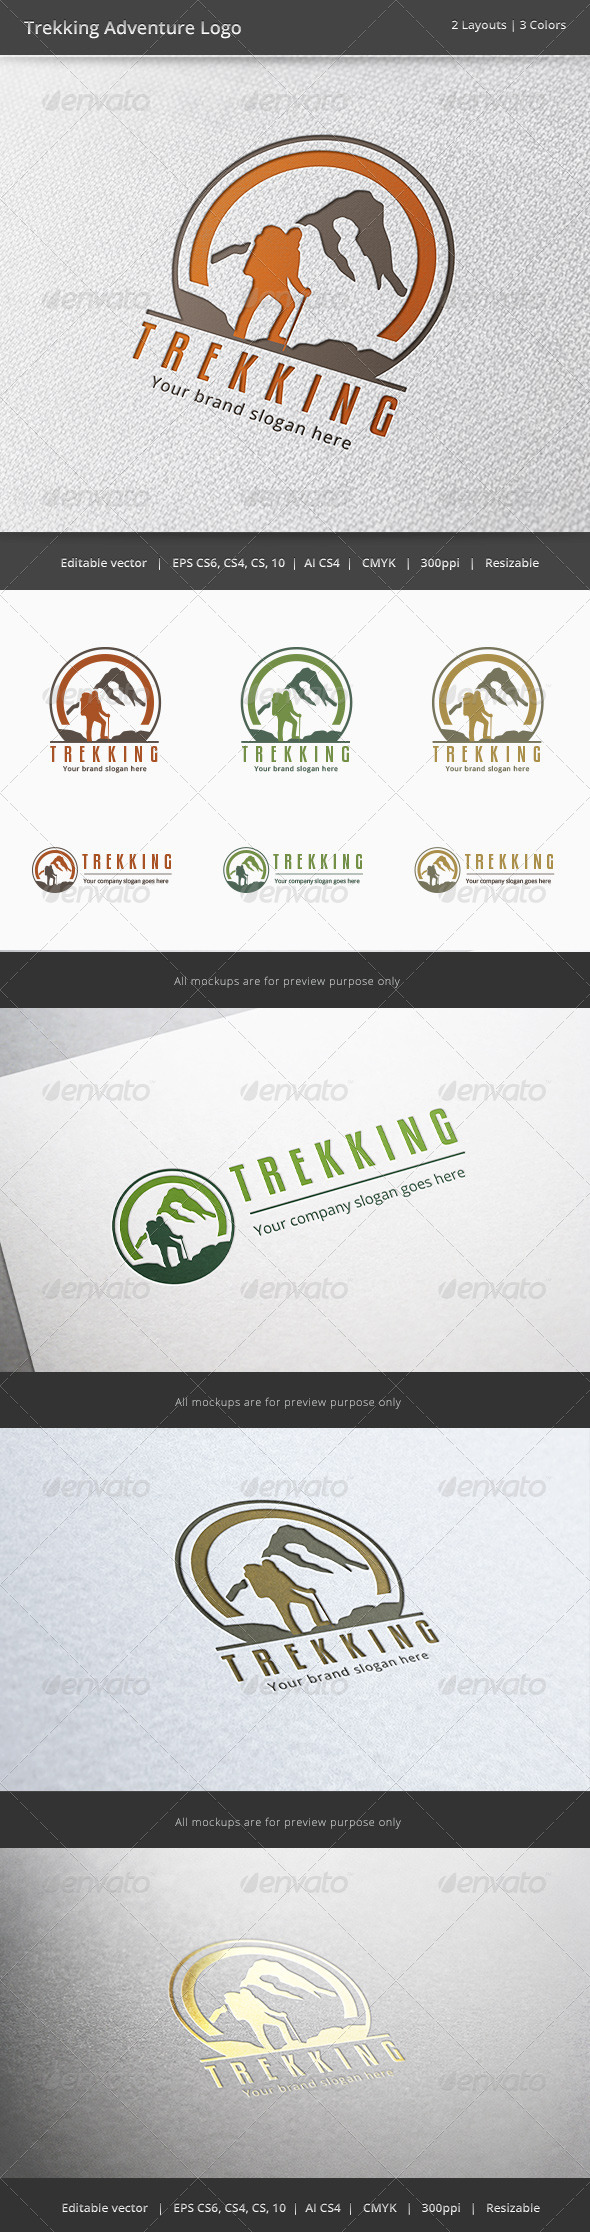 Trekking Adventure Logo - Nature Logo Templates